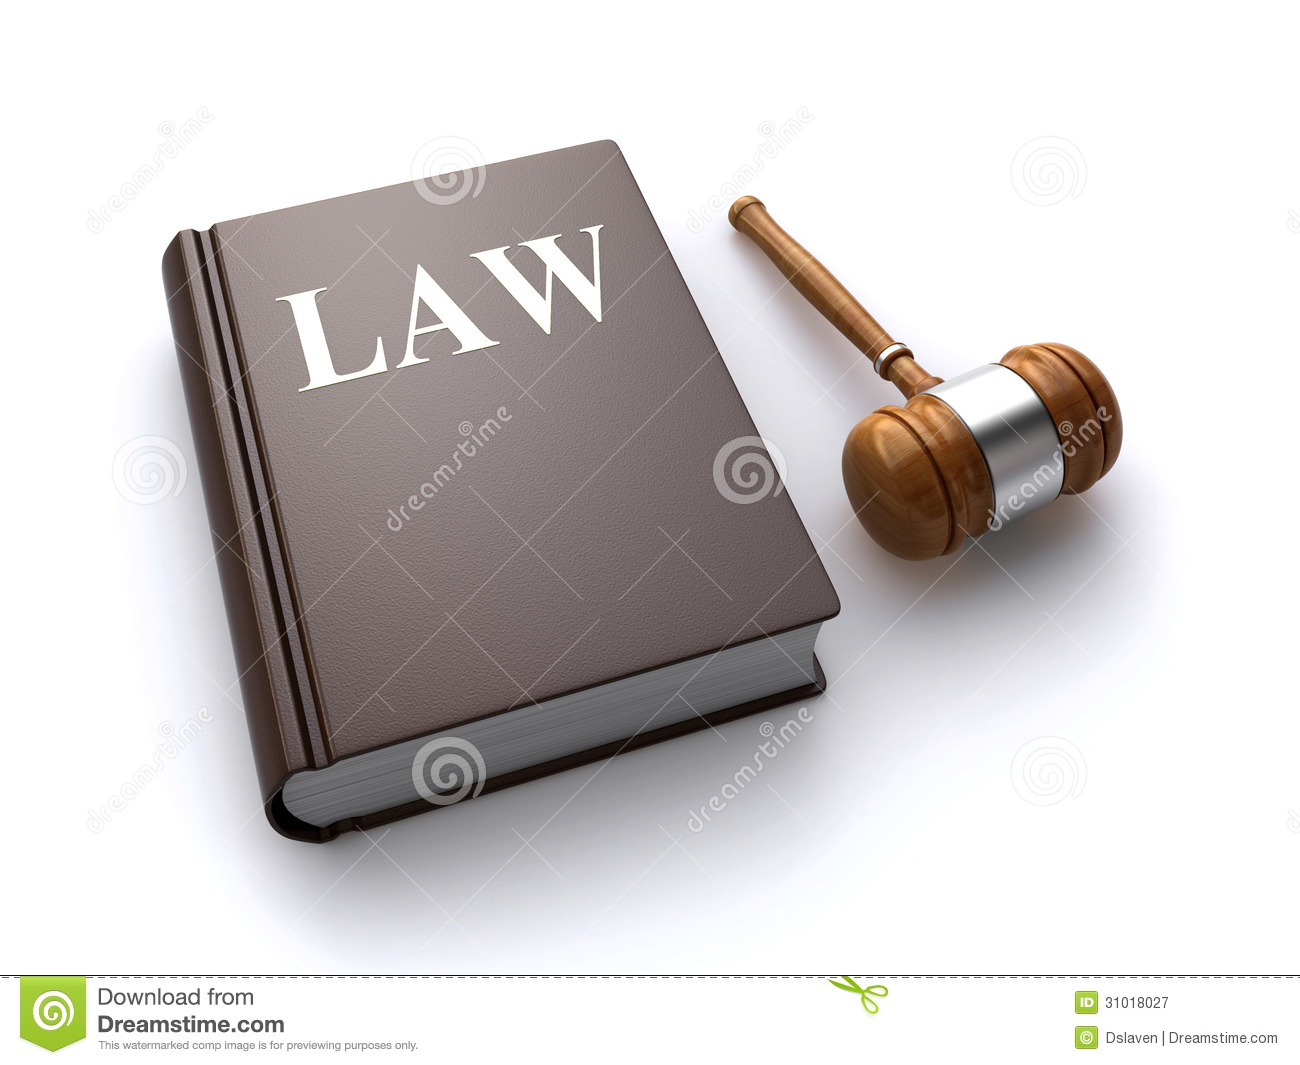 law book clipart - photo #38